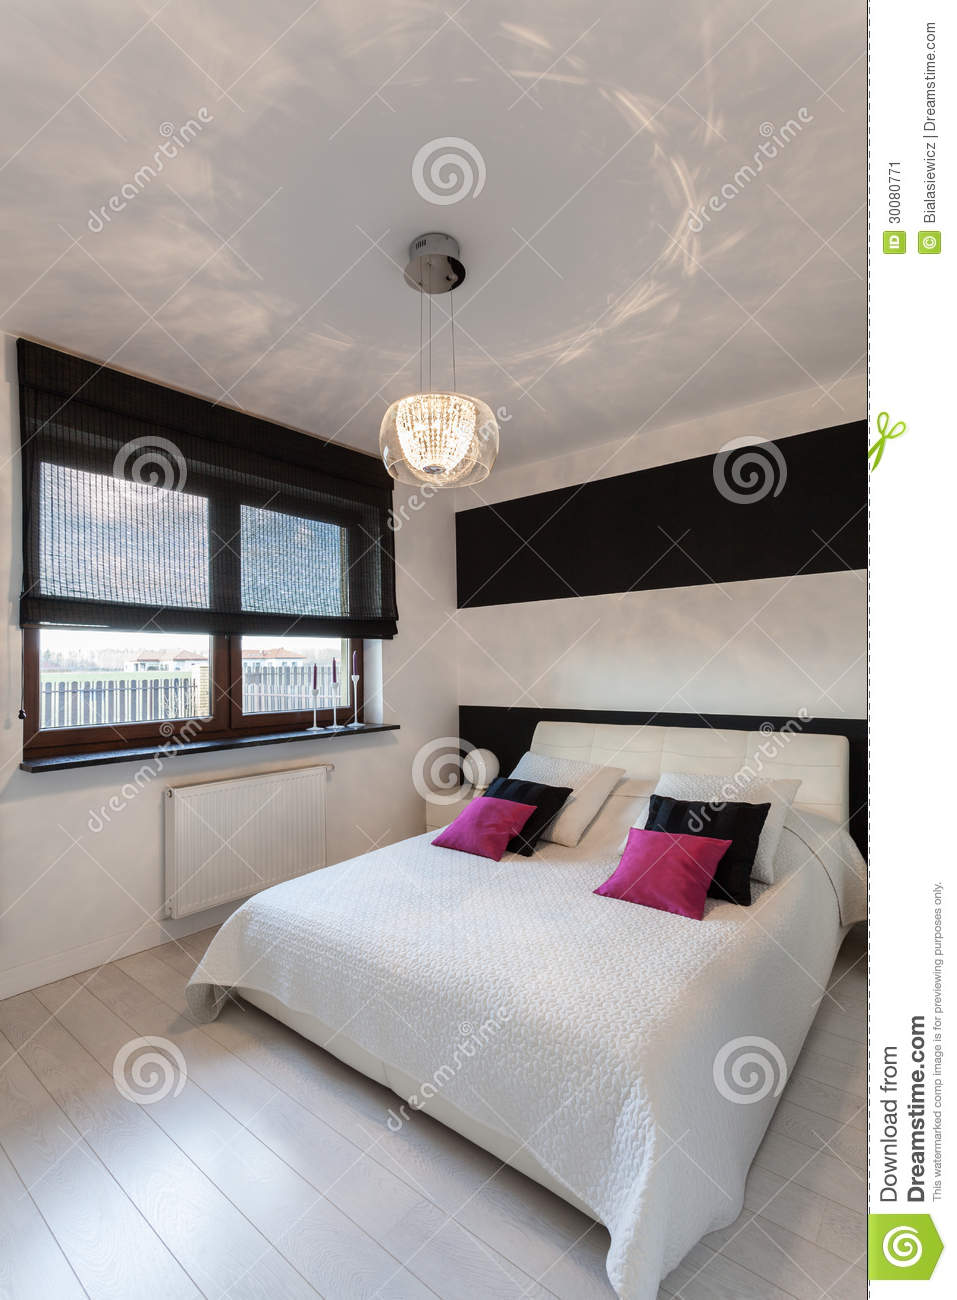 Best chambre a coucher blanche tunisie photos matkin for Chambre coucher moderne